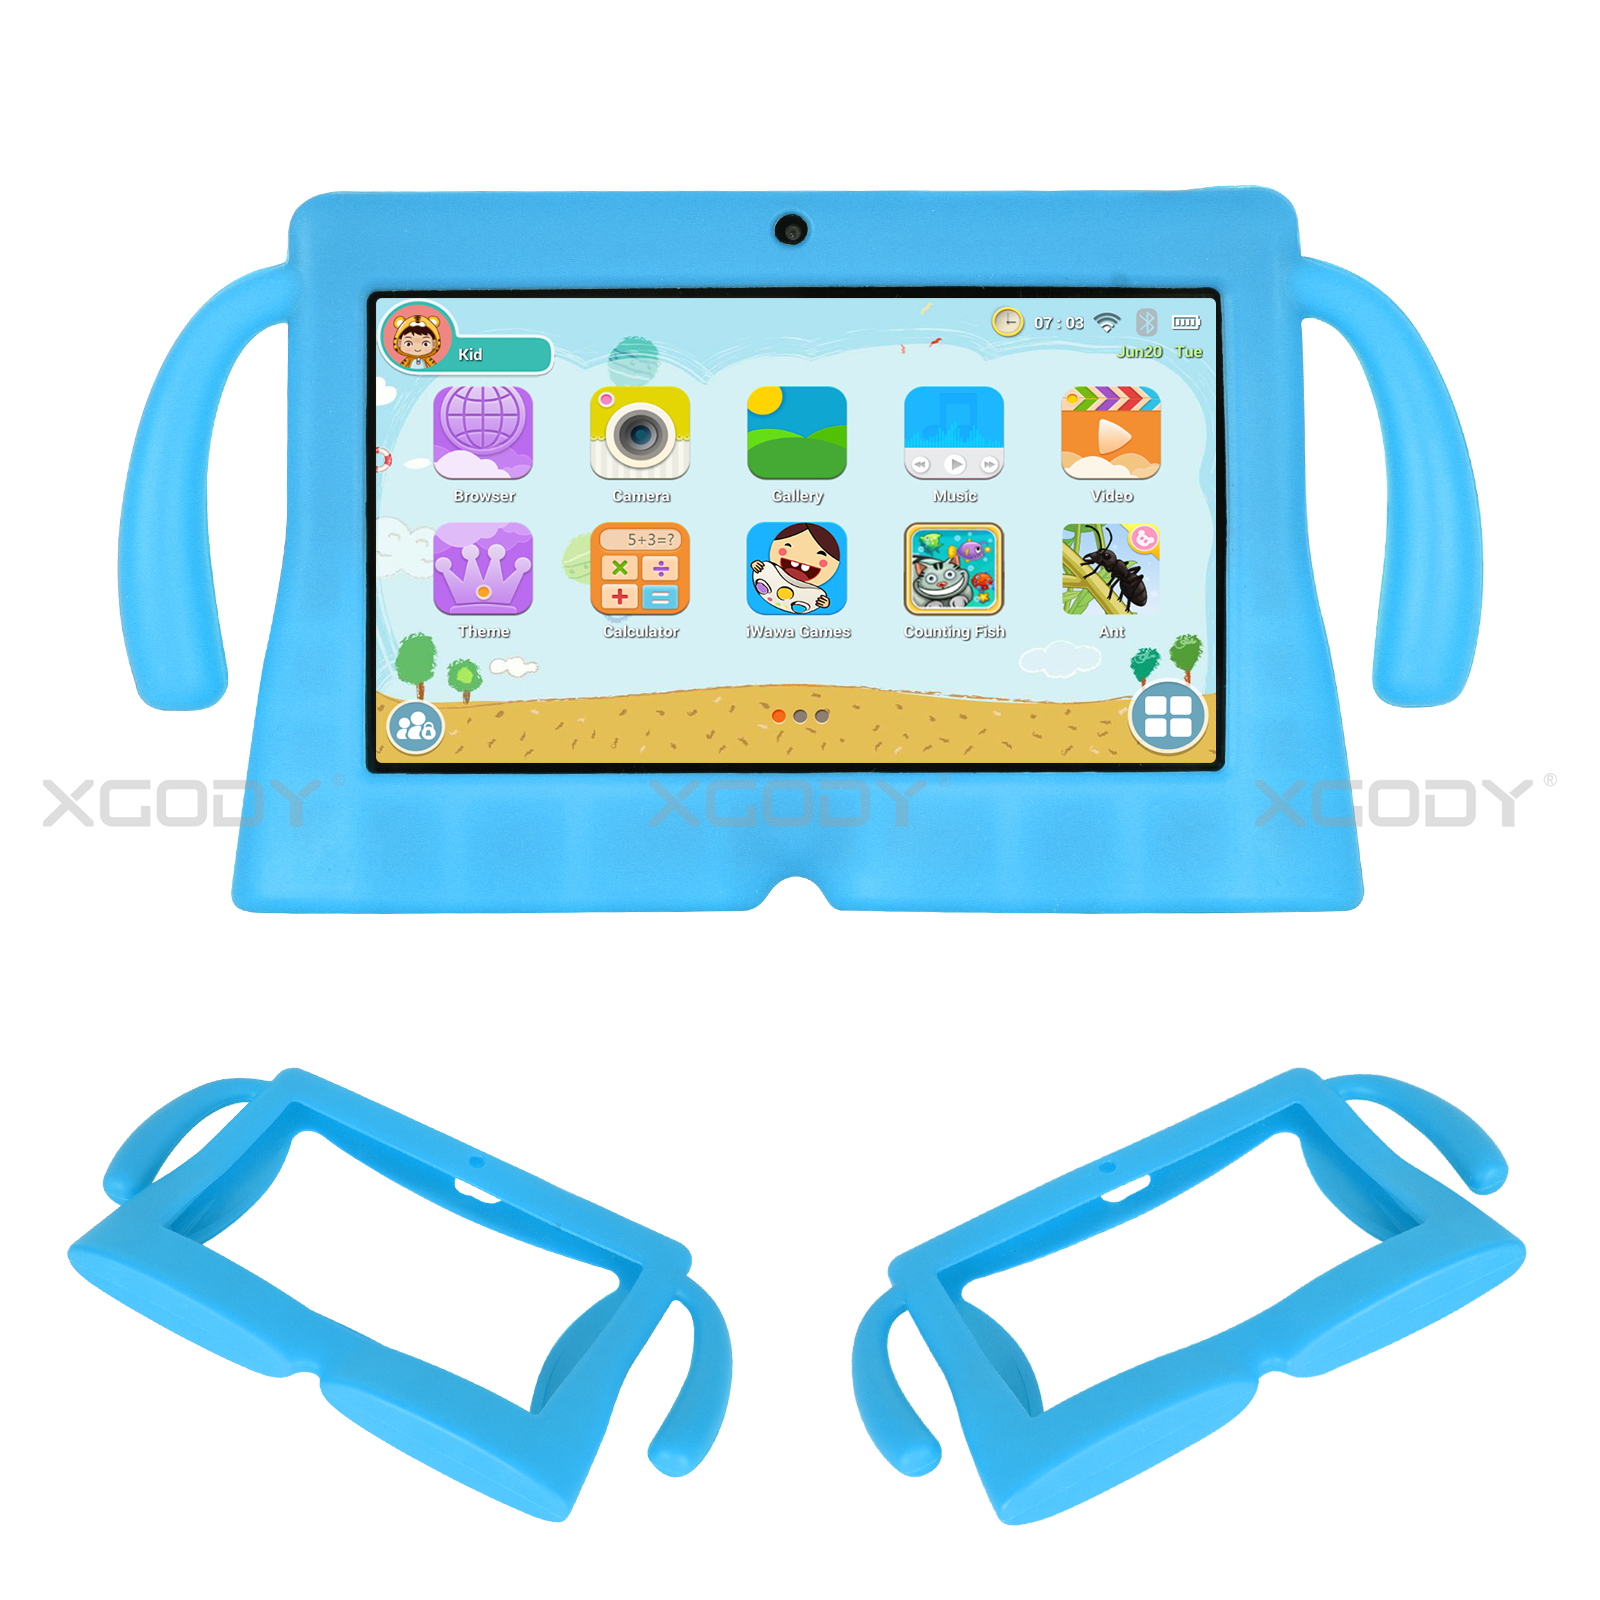 miniature 16 - Silicone Case Tablet Cover For Xgody 7 inch Tablet Waterproof Shockproof Cheap